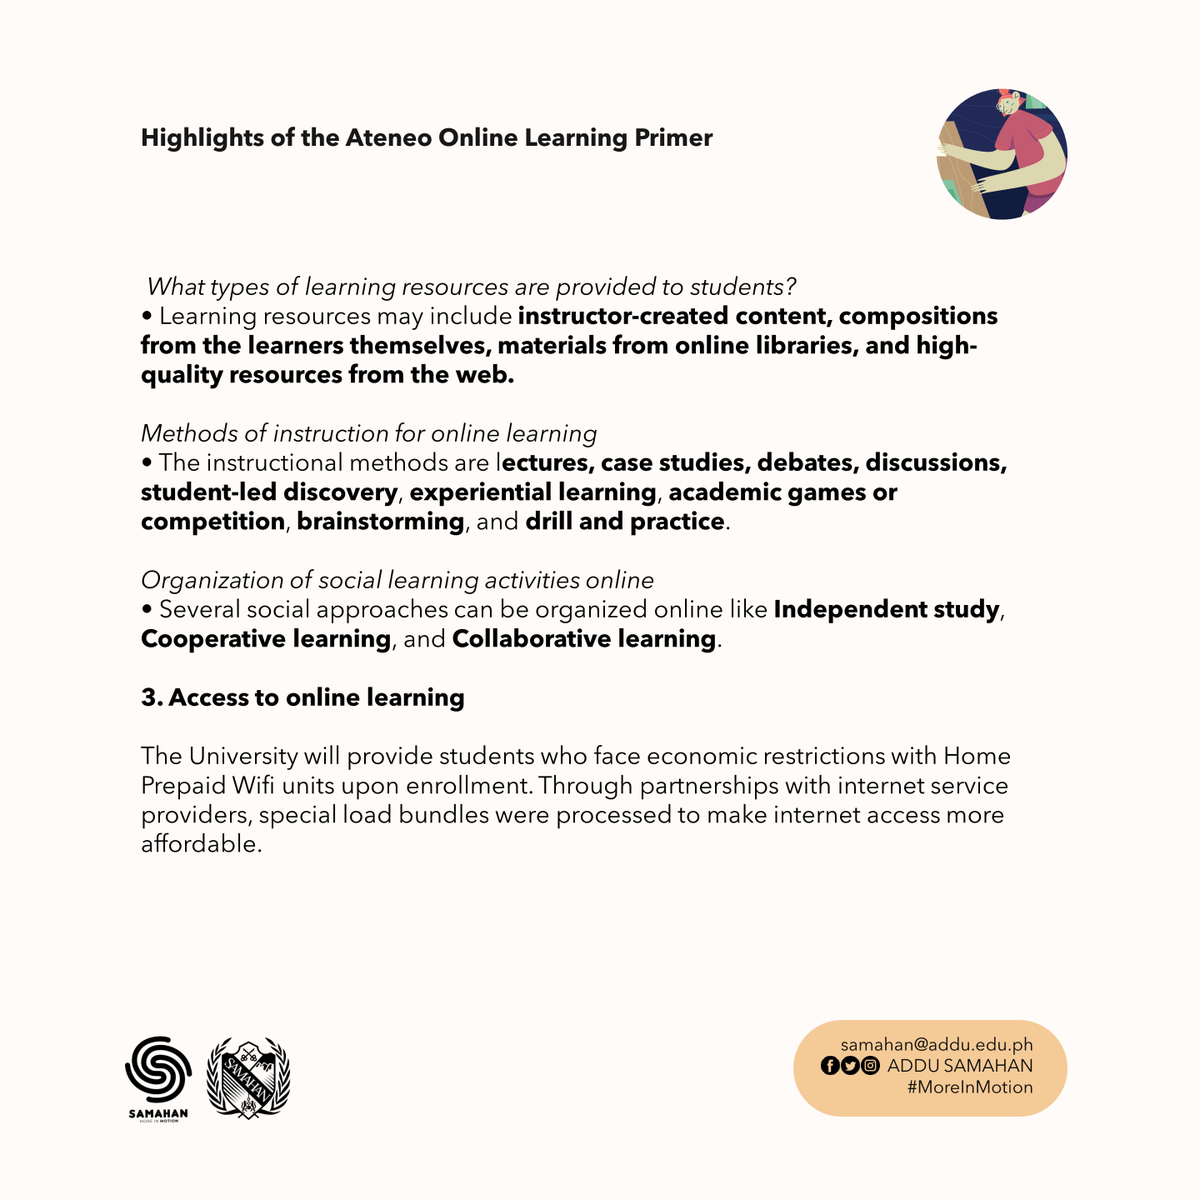 2/2 Highlights of the Ateneo Online Learning Primer 👩‍💻